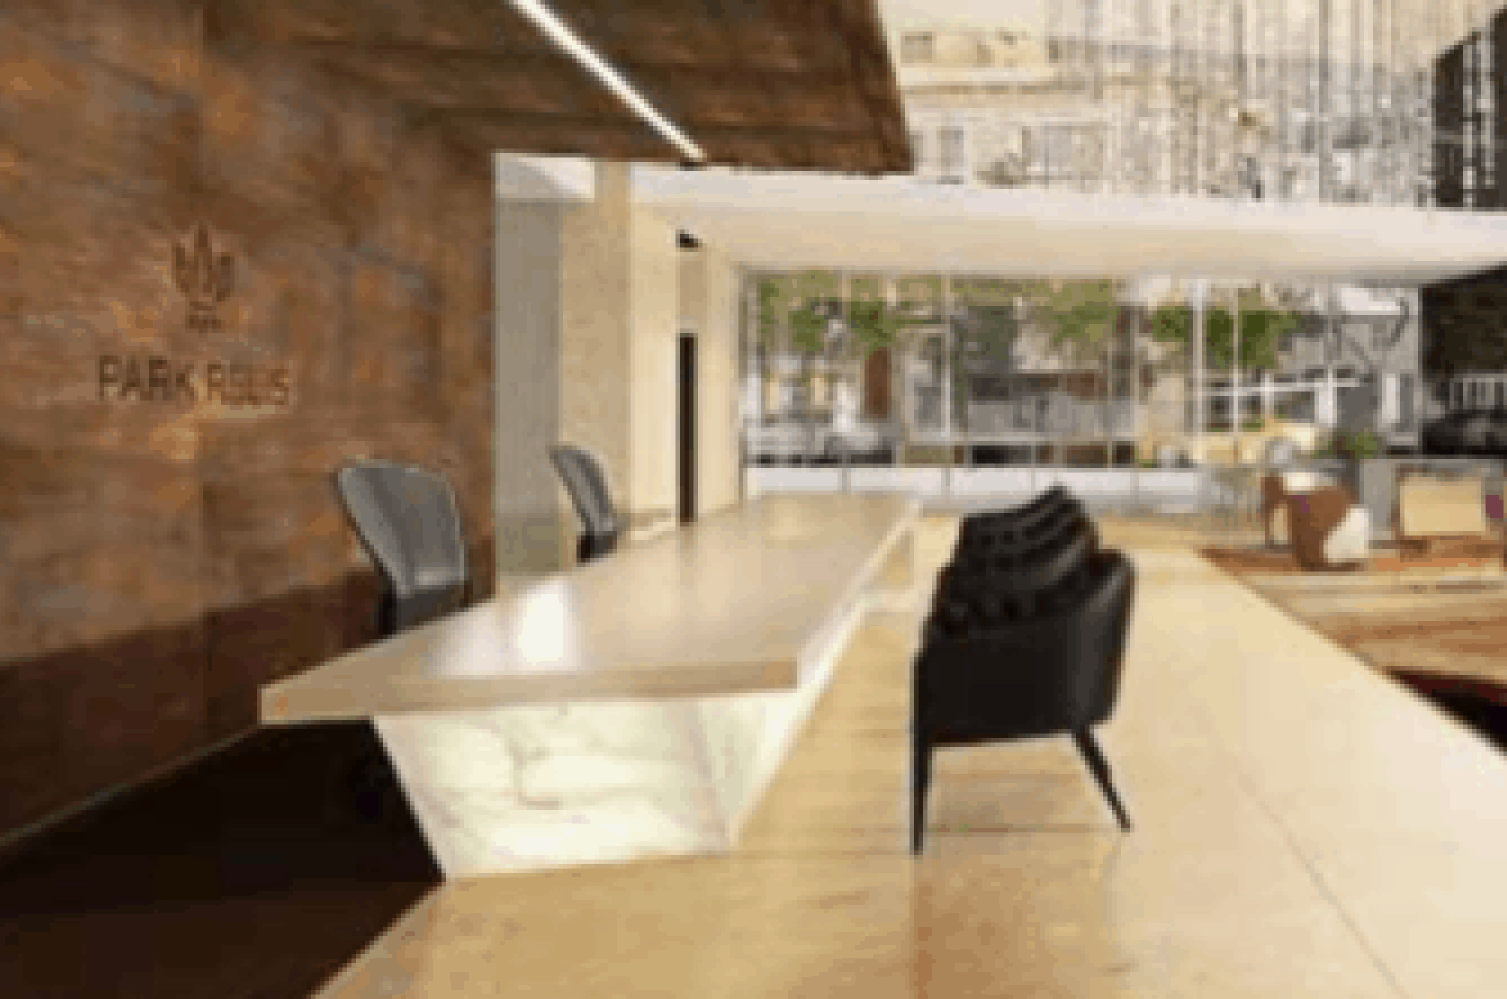 Park Regis hotel in Sydney reception design drawing with foyer in the background